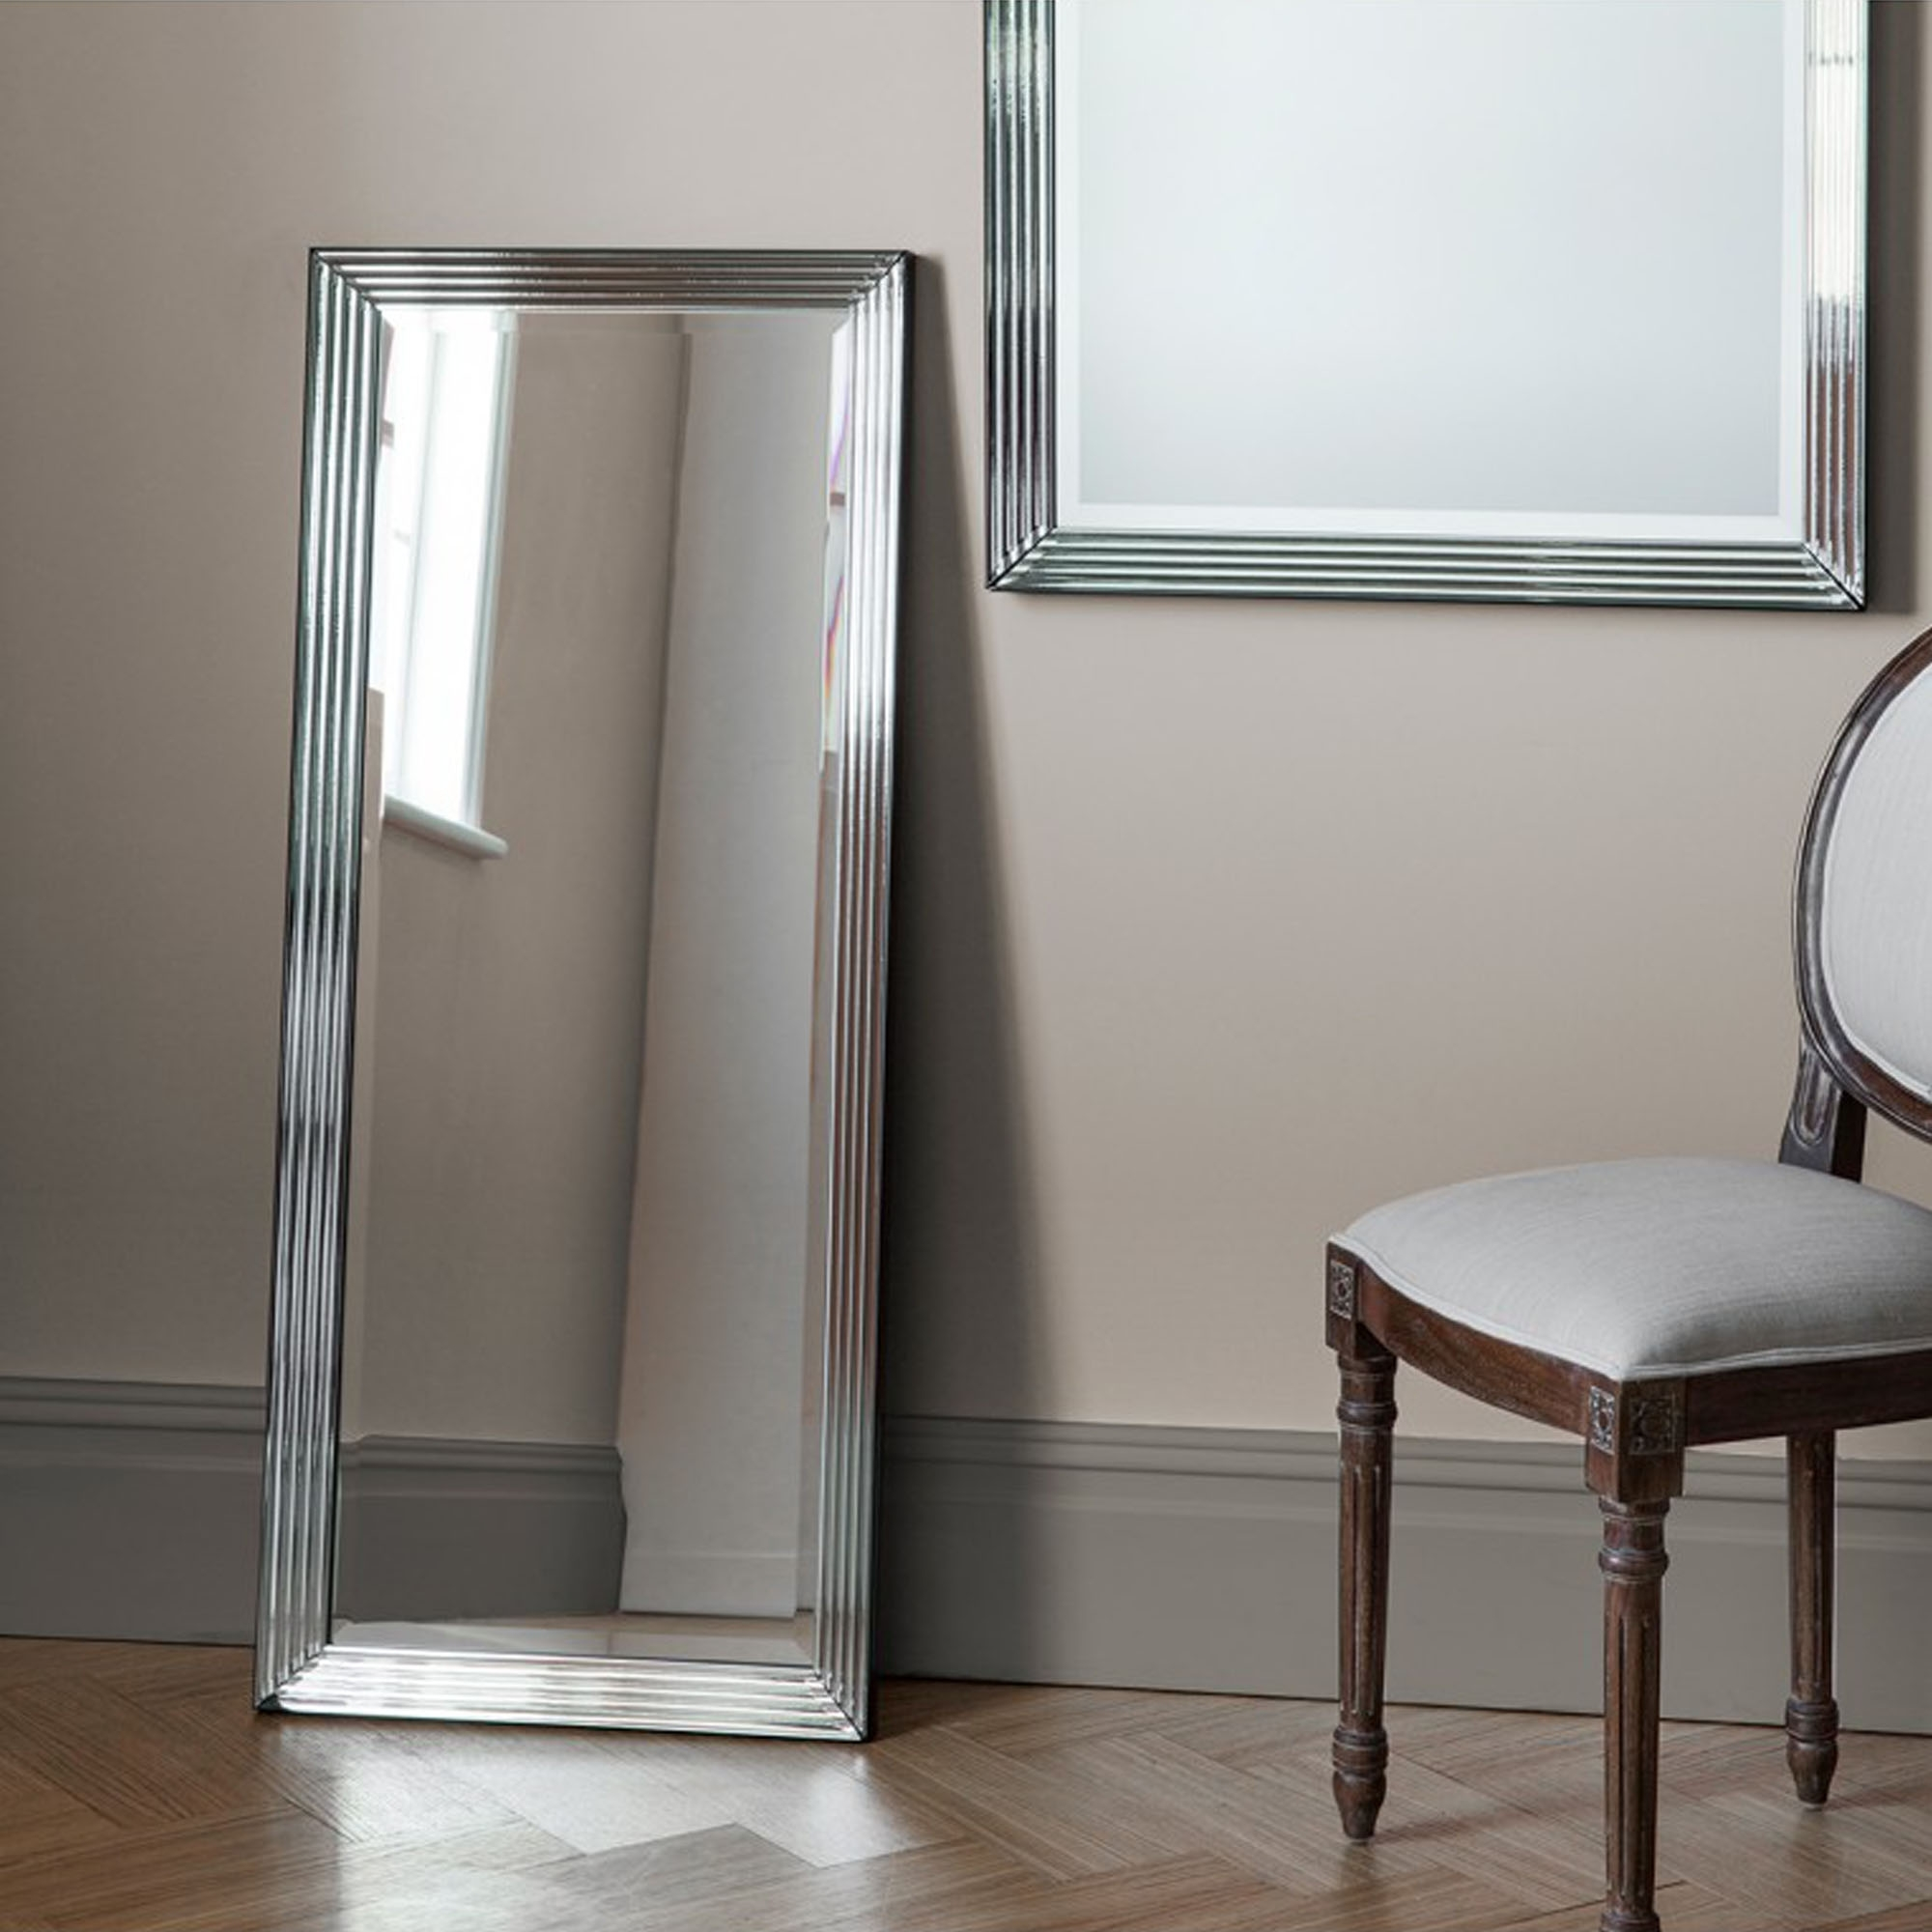 Exeter Long Wall Mirror Wall Mirrors Homesdirect365